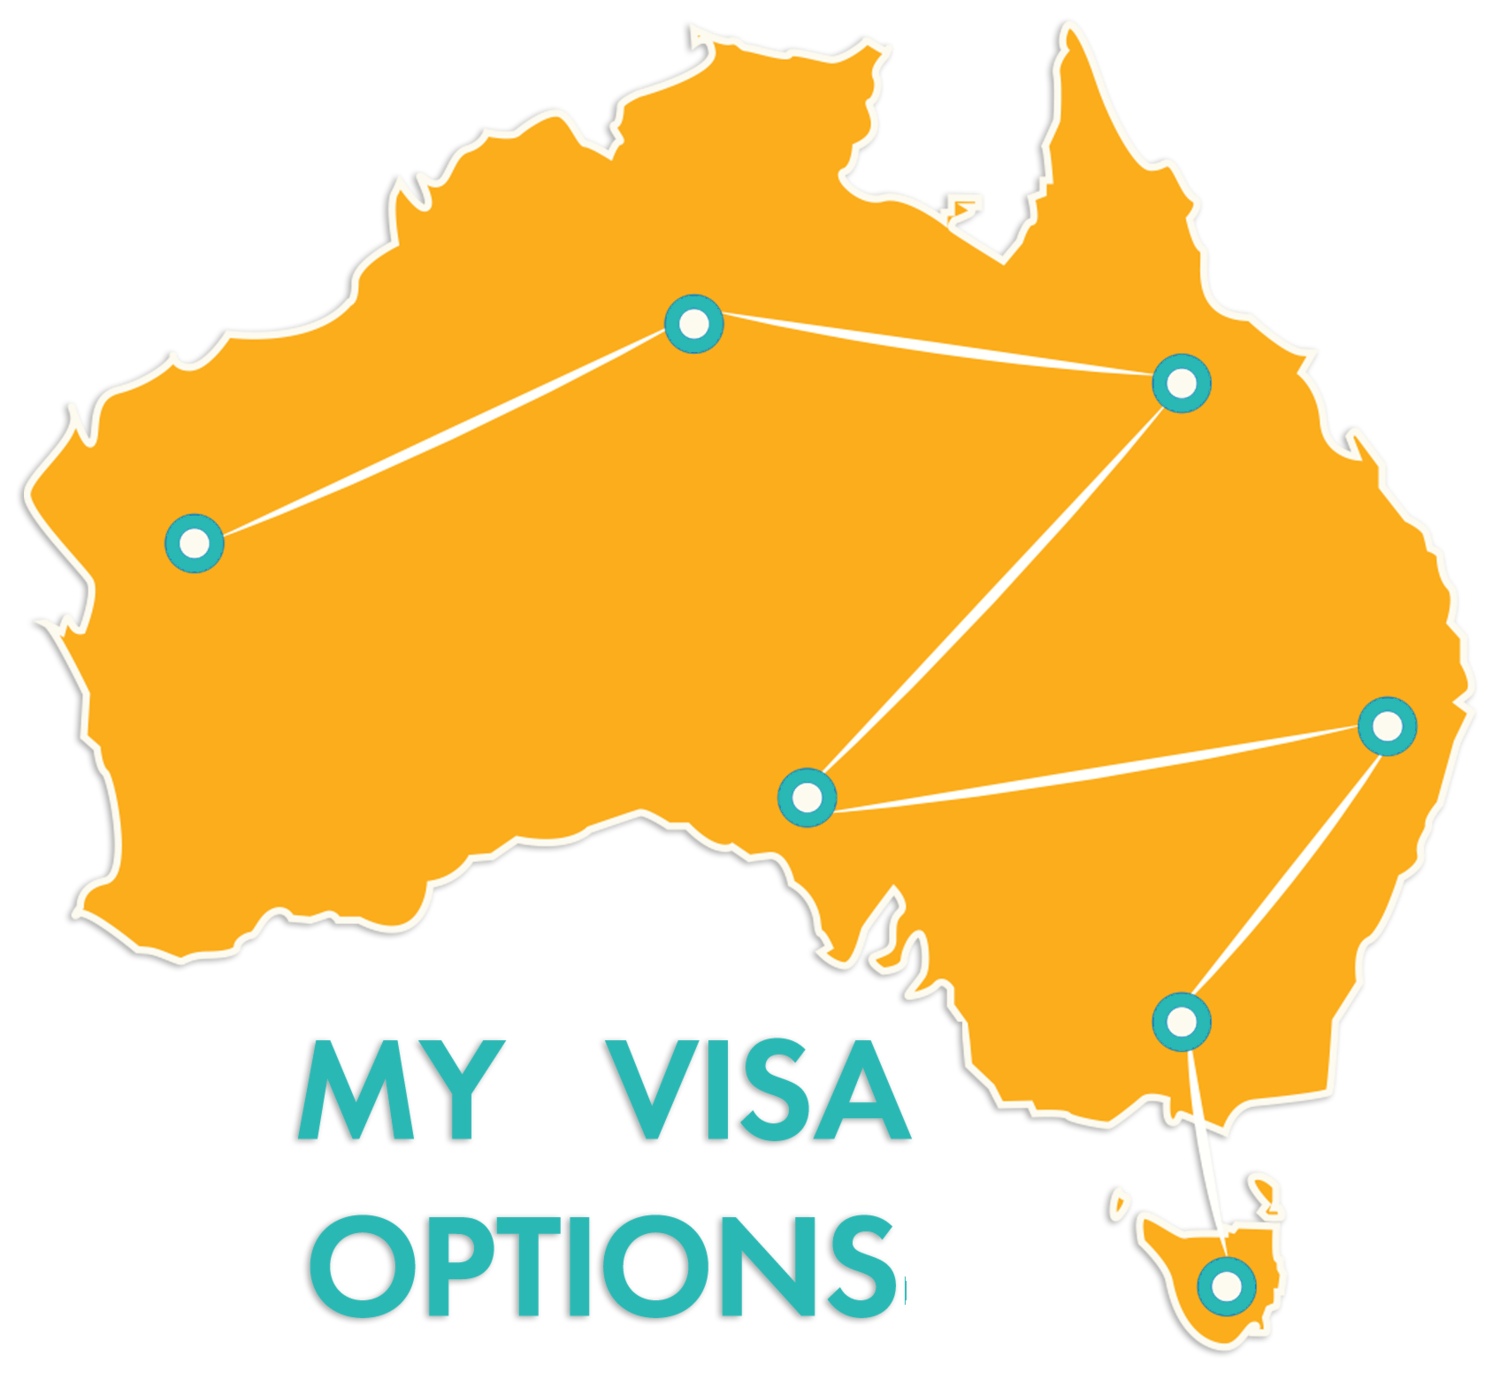 My Visa Options